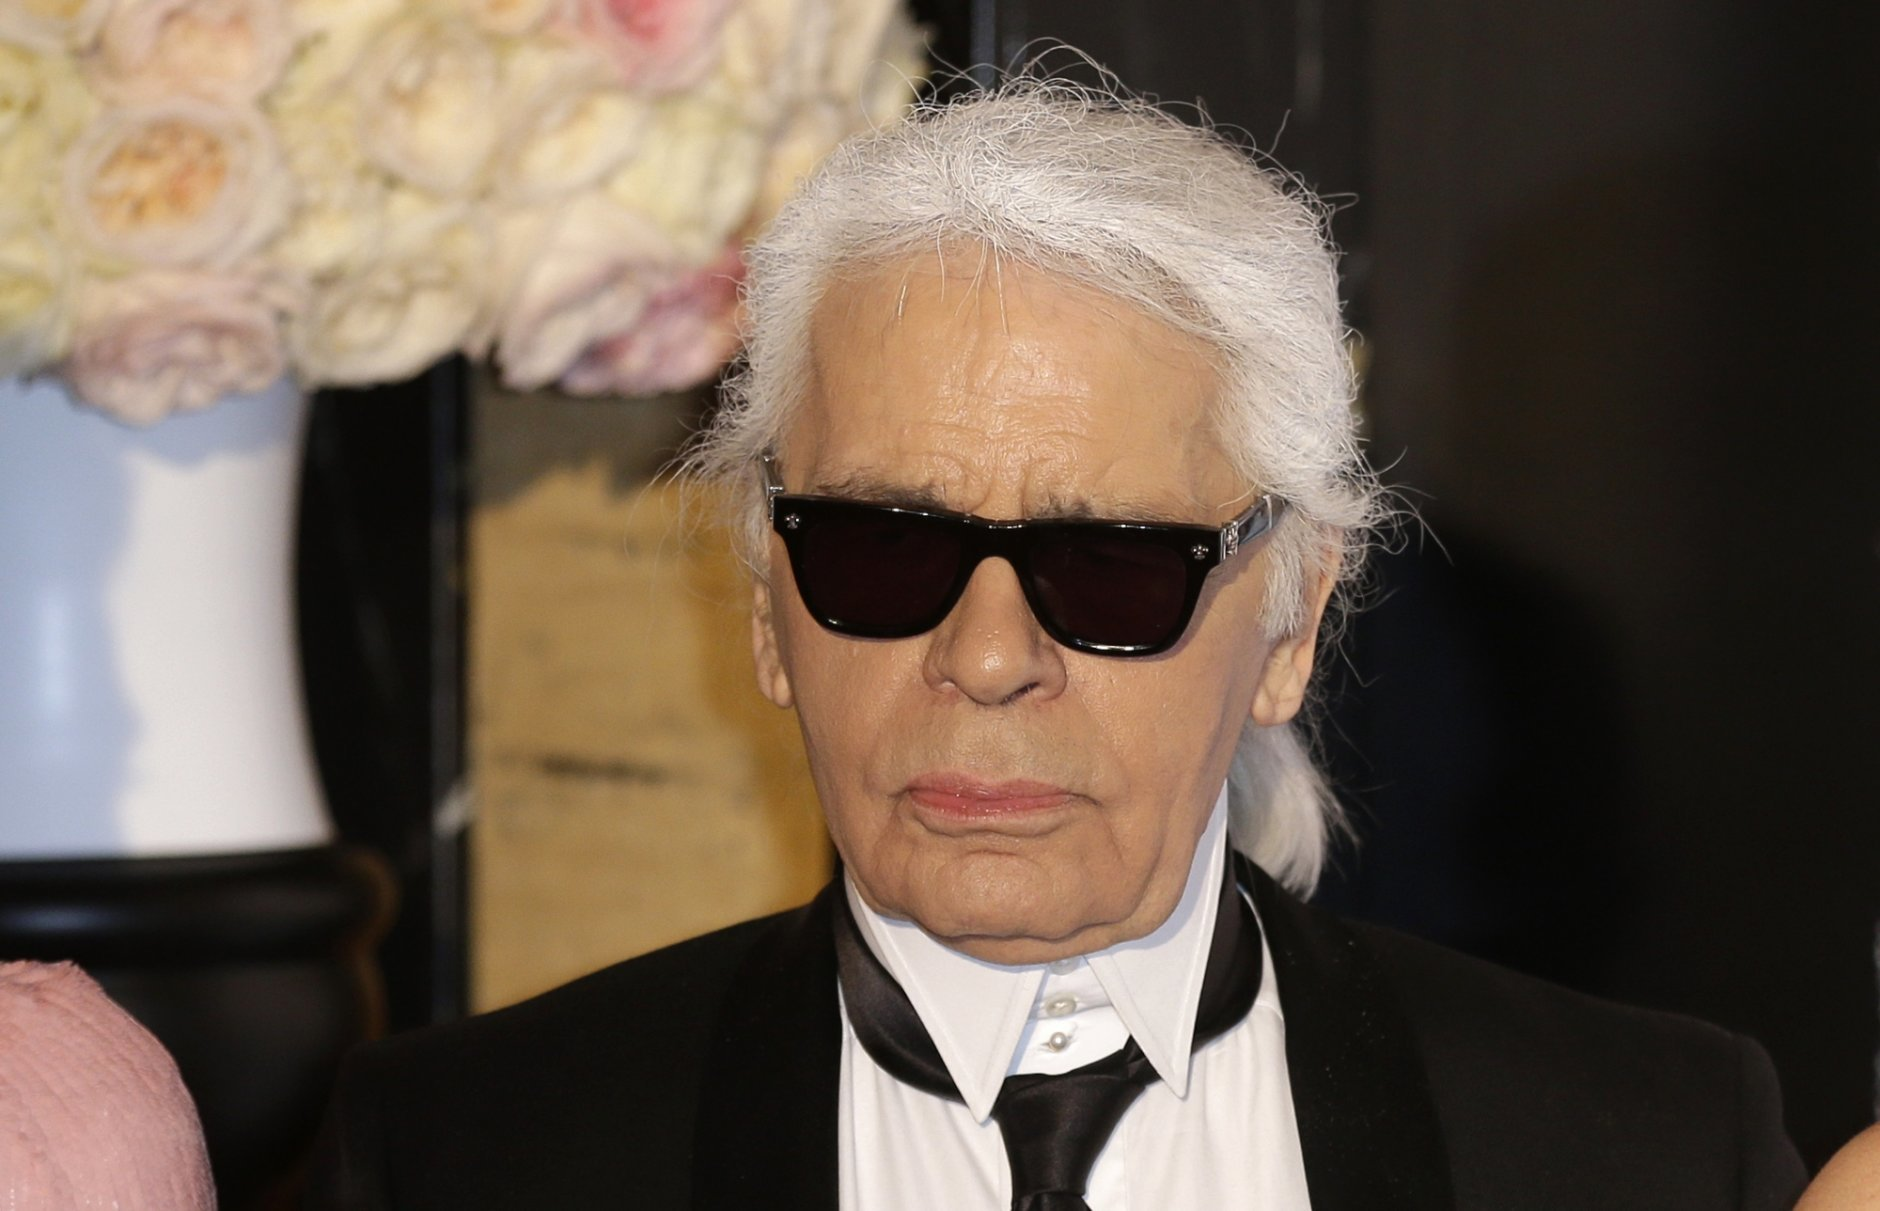 FILE - In this Saturday, March 28, 2015 file photo, Karl Lagerfeld poses for photographers as he arrives at the Rose Ball in Monaco. The Rose Ball is the traditional annual charity event in the Principality of Monaco. Chanel's iconic couturier, Karl Lagerfeld, whose accomplished designs as well as trademark white ponytail, high starched collars and dark enigmatic glasses dominated high fashion for the last 50 years, has died. He was around 85 years old. (AP Photo/Lionel Cironneau, File)